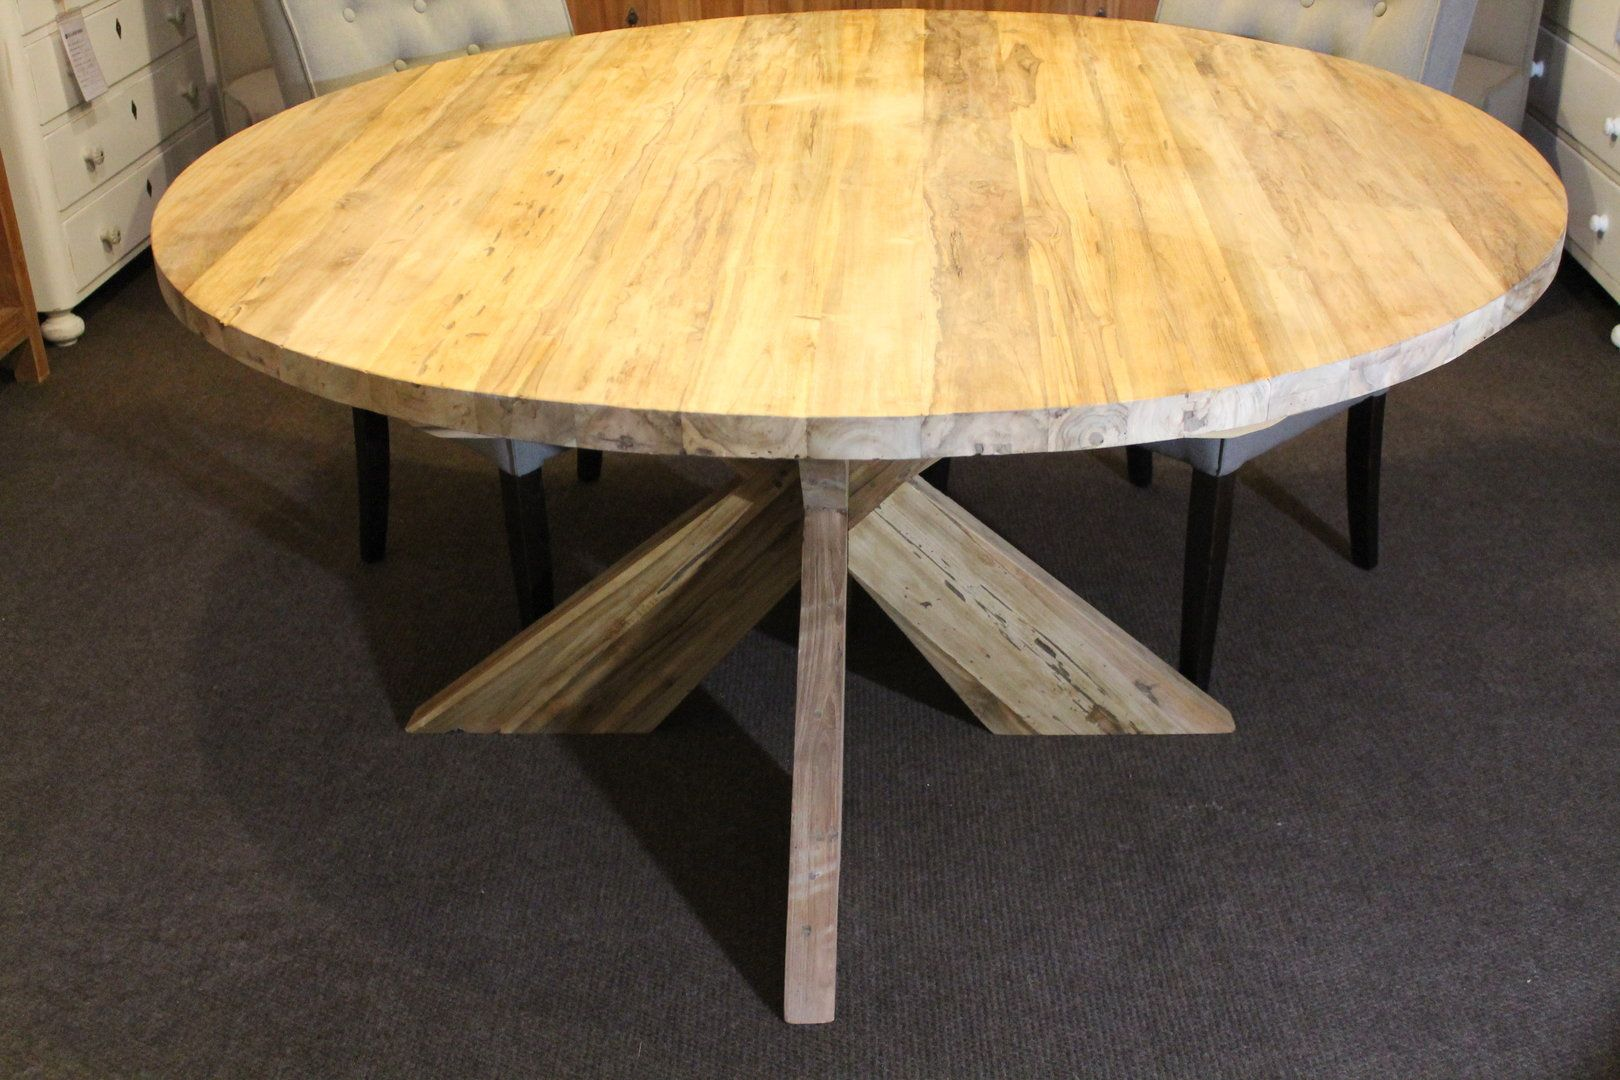 Ronde Eettafel Industrieel 150.Ronde Eettafel 150 Cm Doorsnee Ronde Tafel Table Dining Table